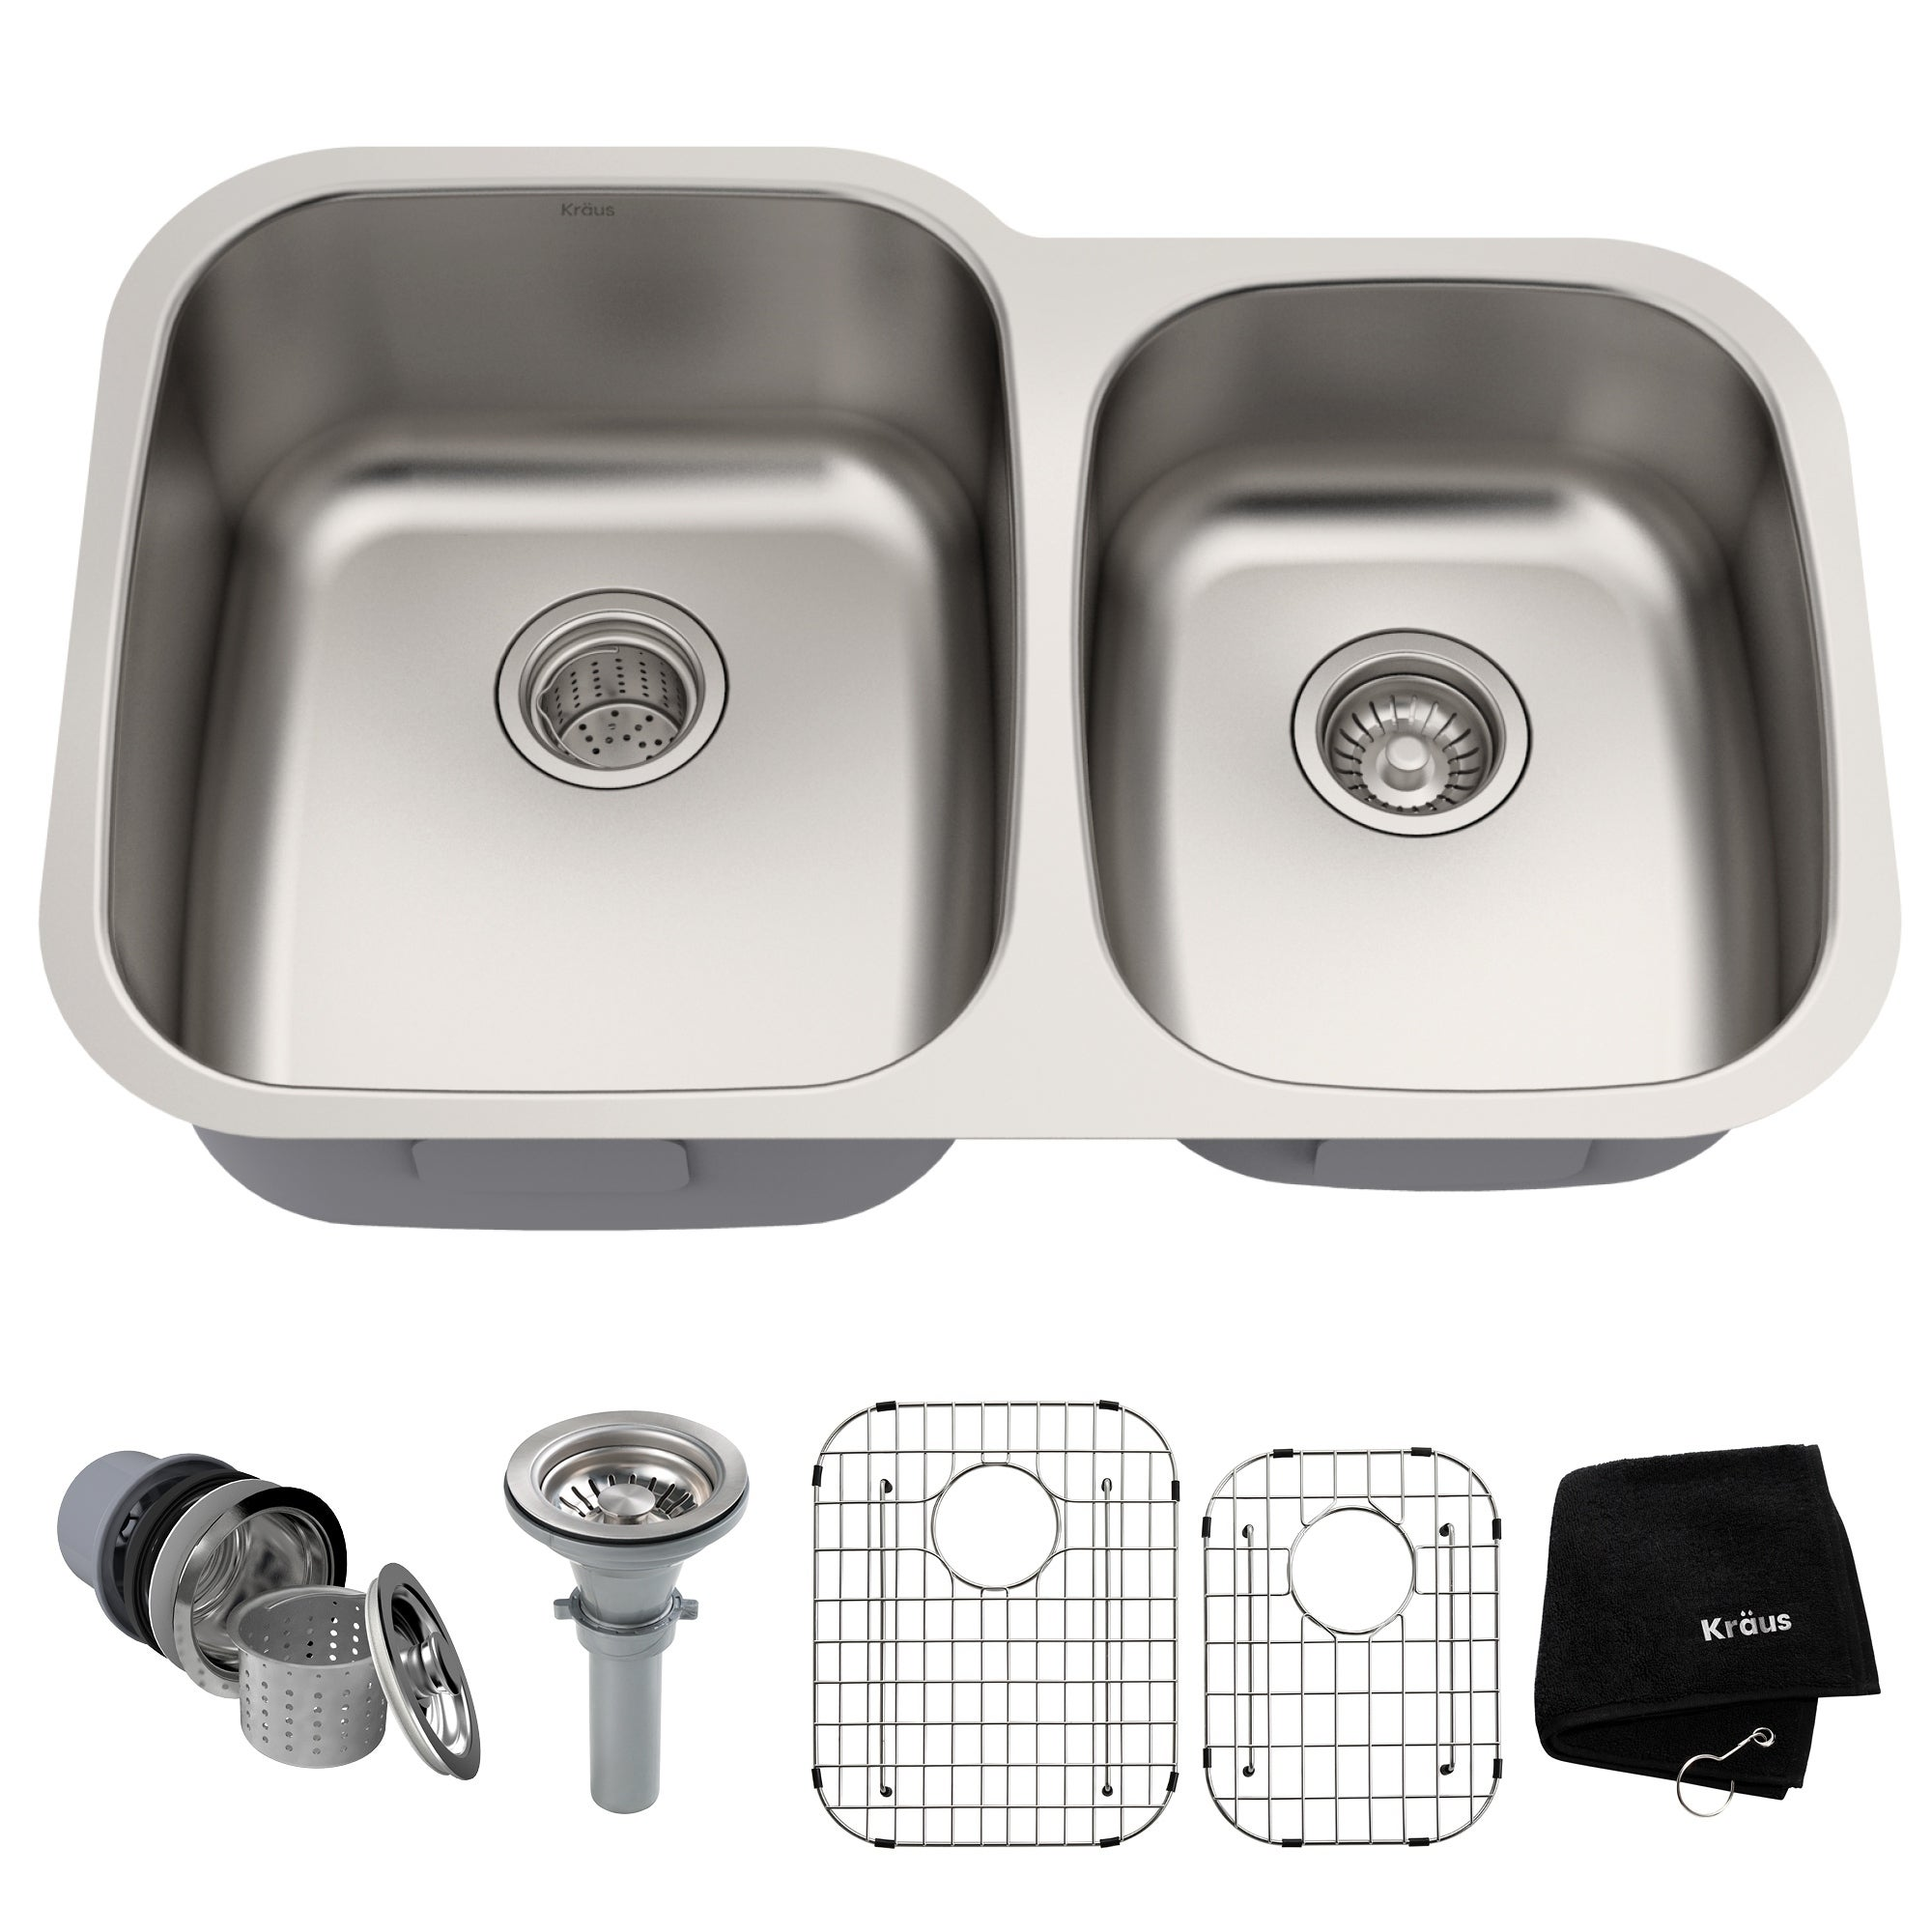 Kraus Kbu24 Premier Undermount 32 In 16g 60 40 2 Bowl Satin Stainless Steel Kitchen Sink Grids Strainers Towel On Free Shipping Today